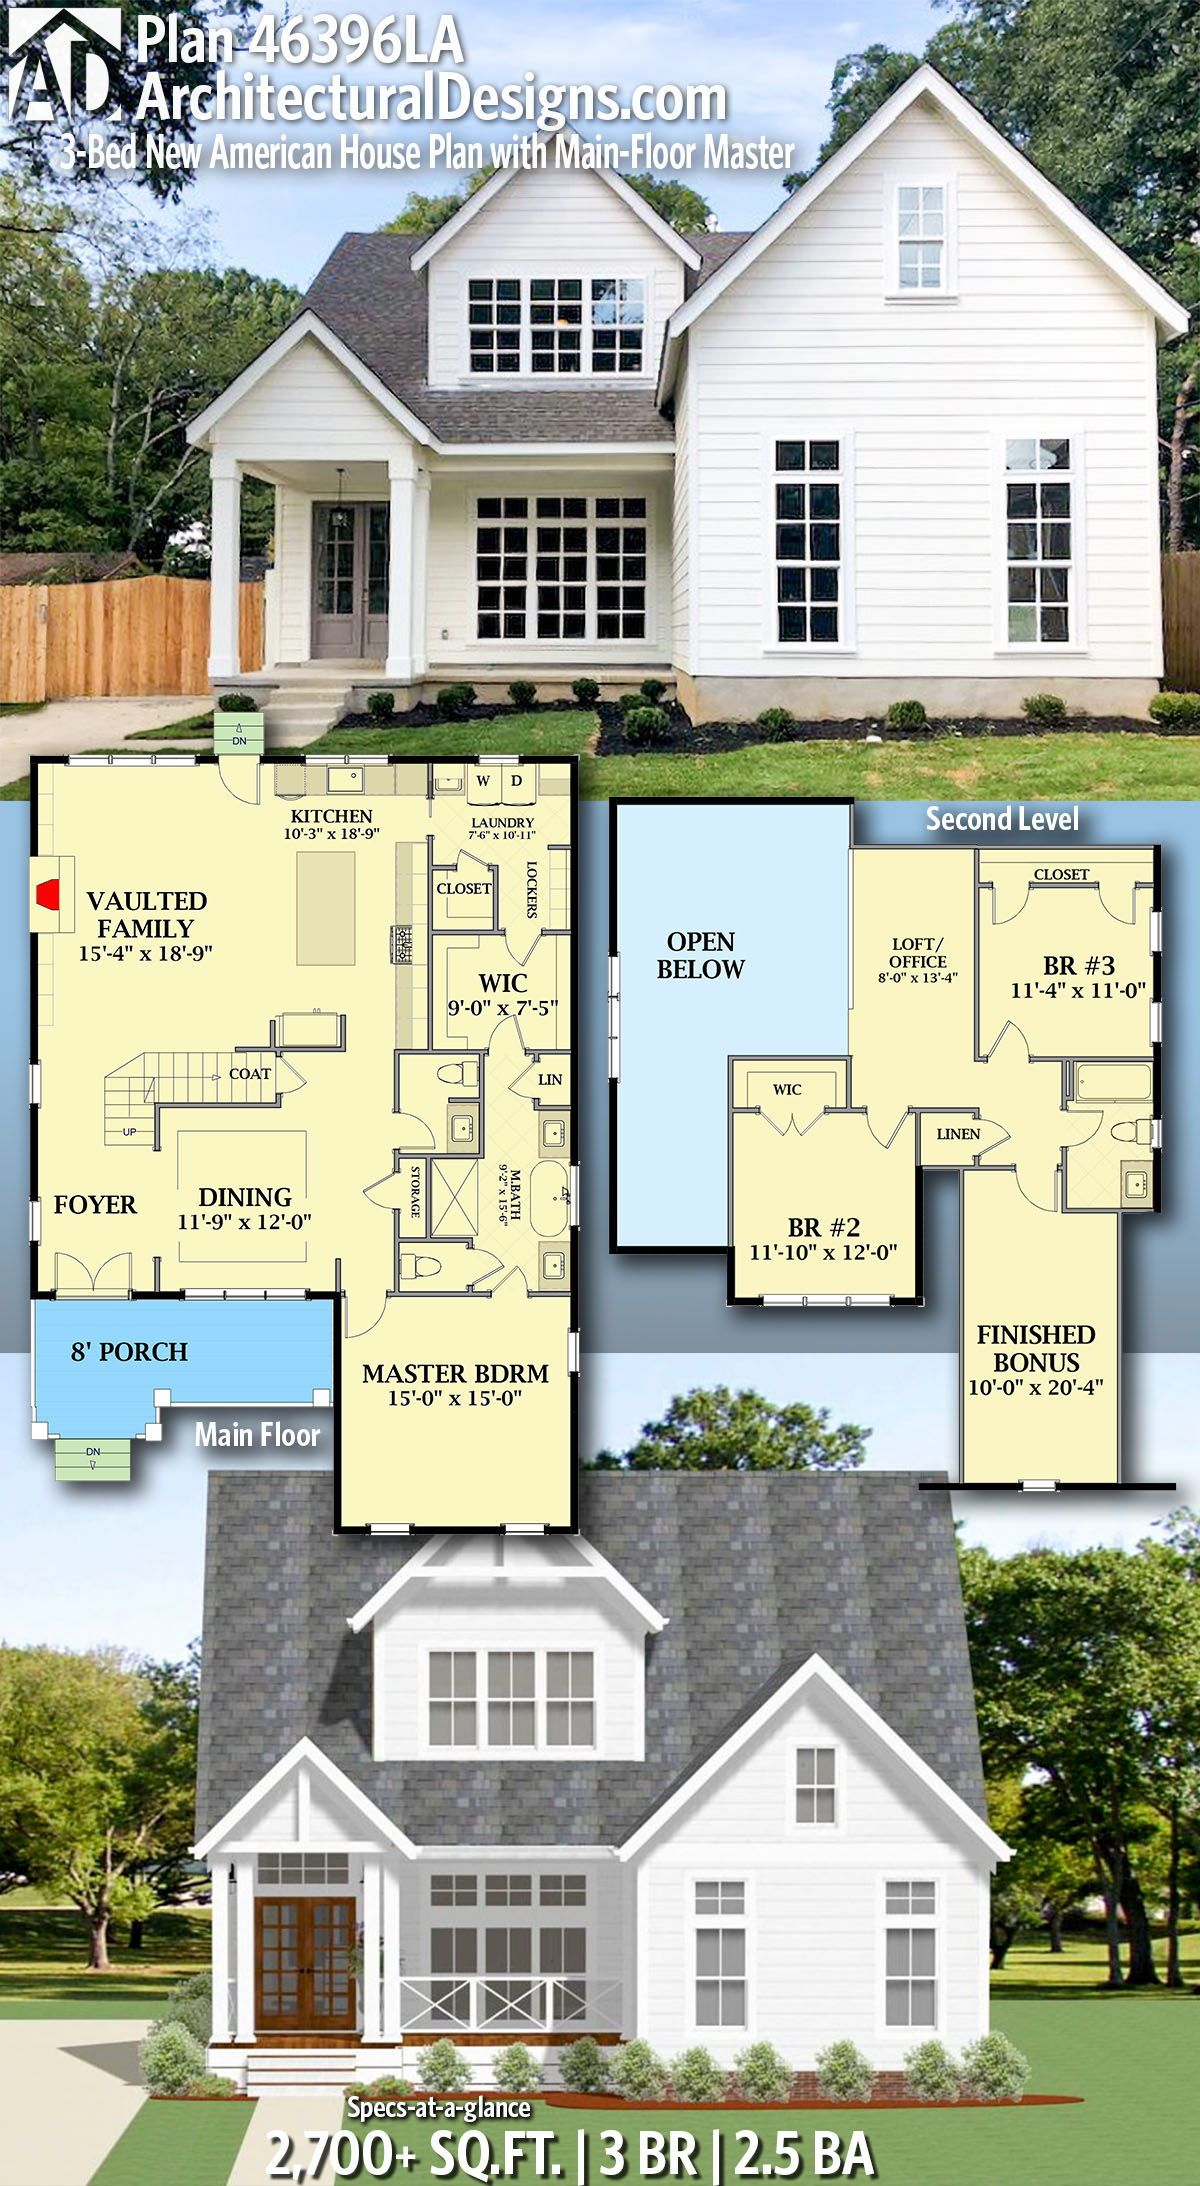 Architectural Designs New American Home Plan 46396la Gives You 3 Bedrooms 2 5 Baths And 2 700 Sq Ft Ready Whe New House Plans House Plans Dream House Plans